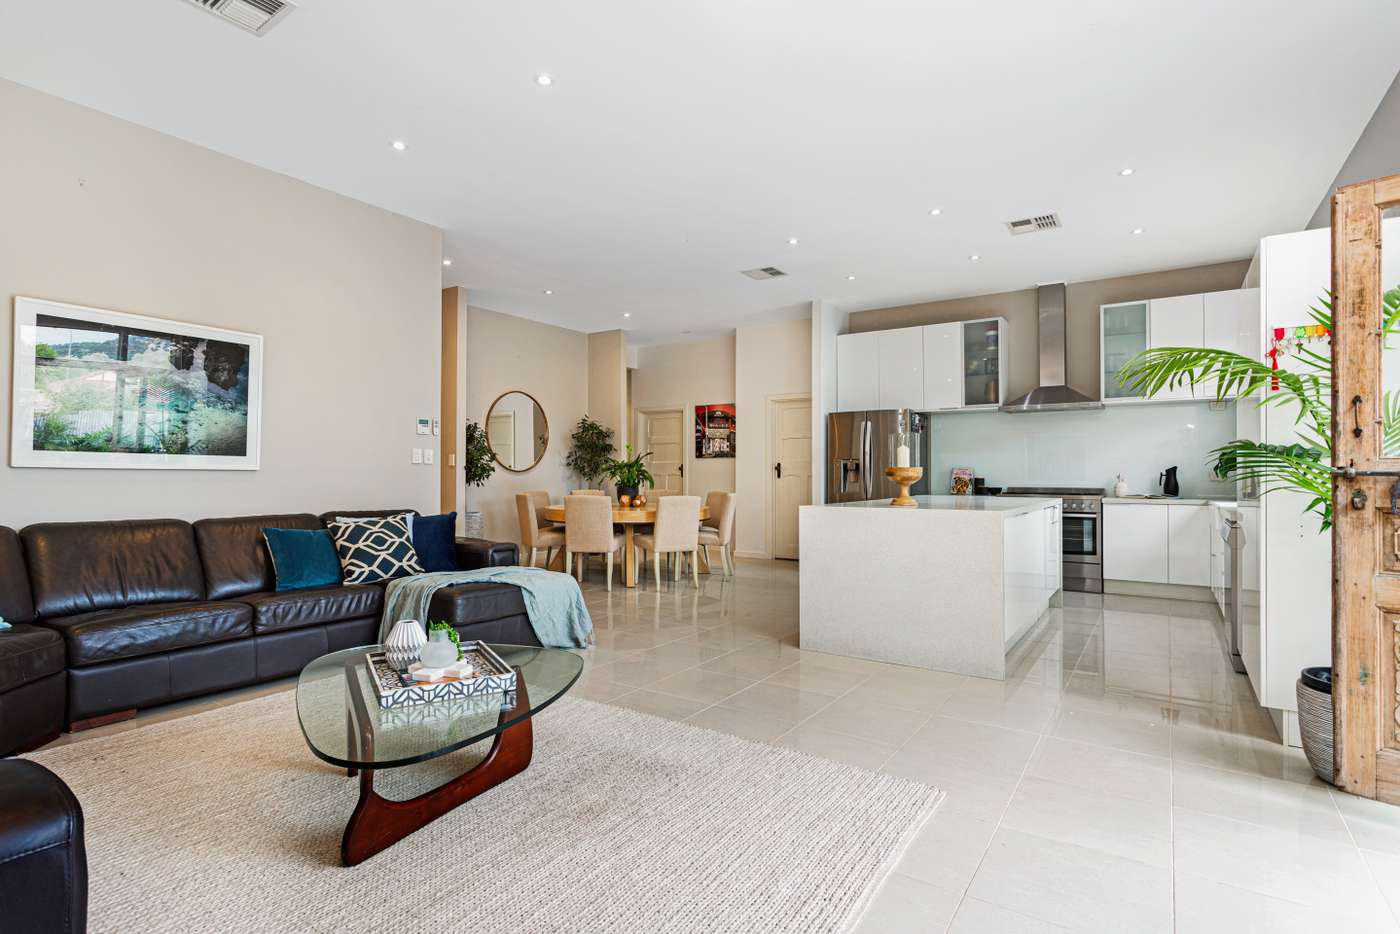 Fifth view of Homely house listing, 42 Sturt Avenue, Colonel Light Gardens SA 5041